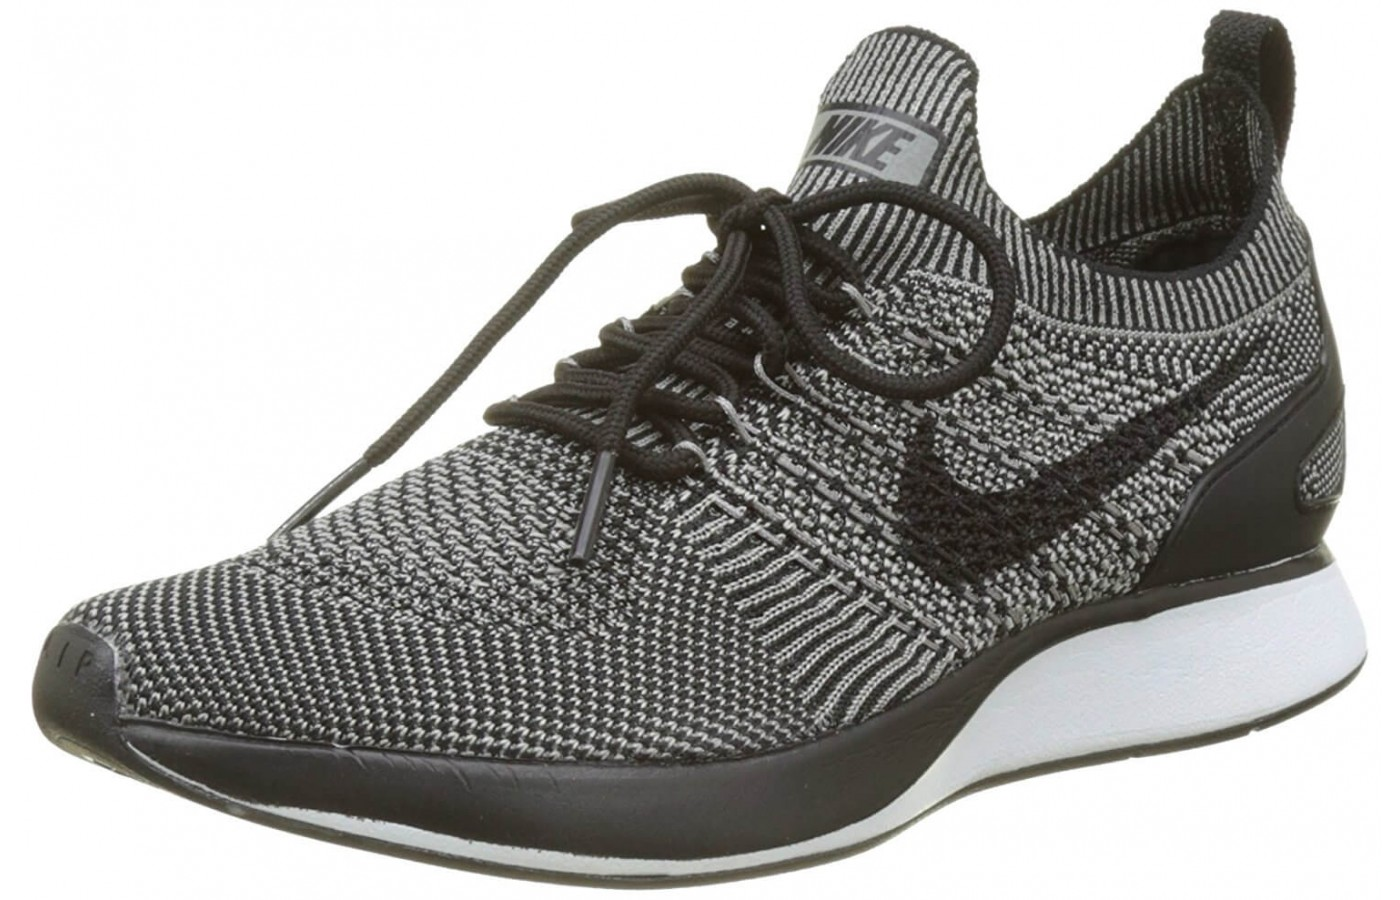 The Nike Air Zoom Mariah Flyknit Racer can be designed entirely by you!